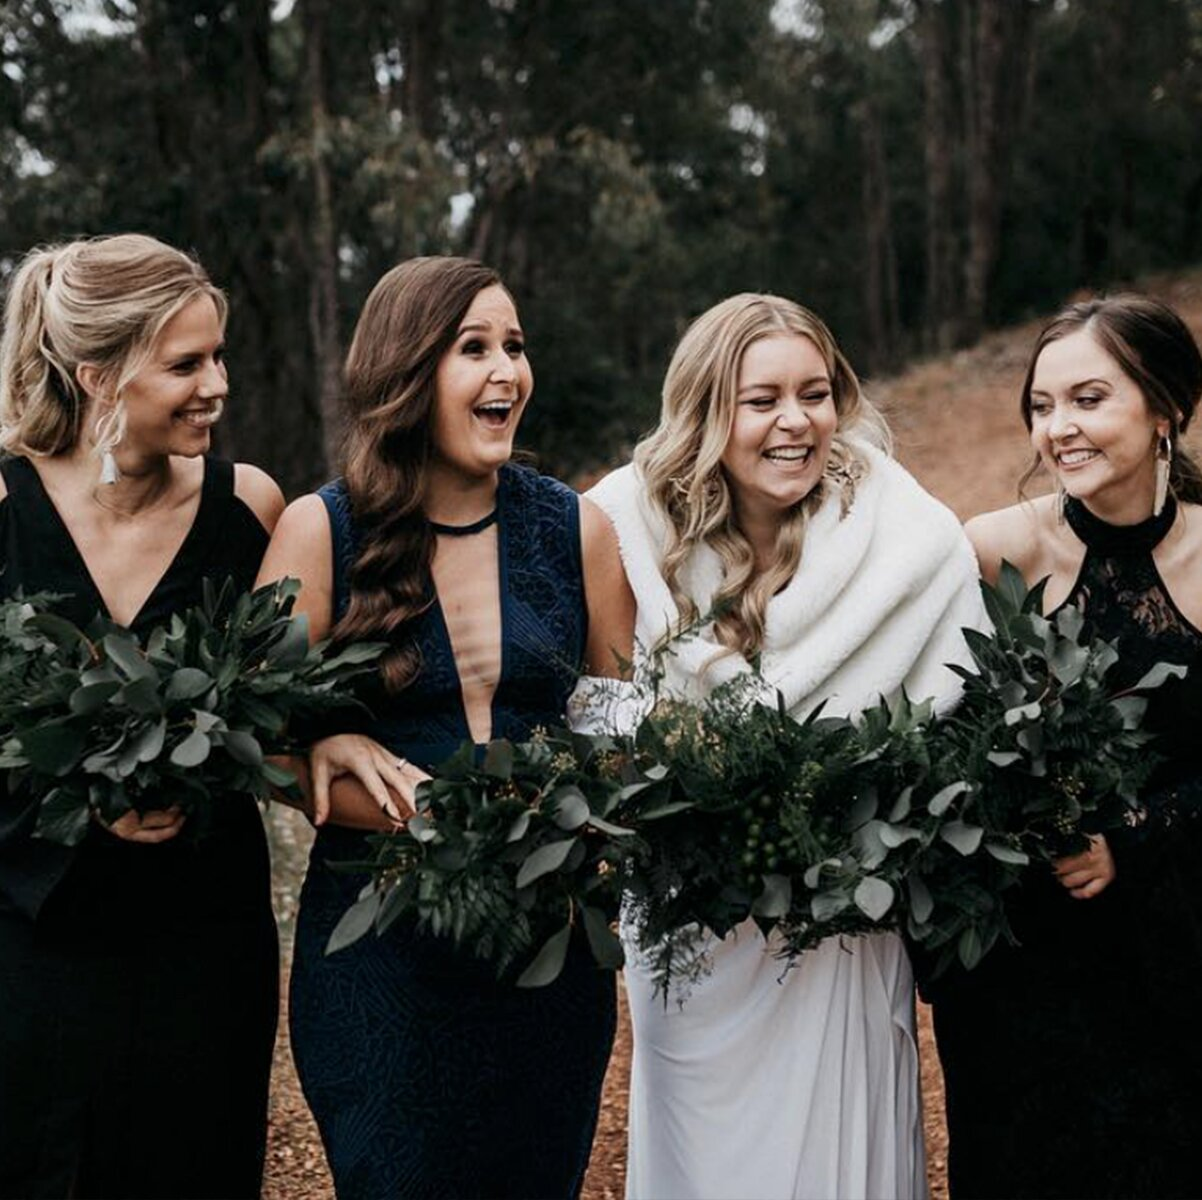 sydney-wedding-florist-flowers-packages-price-affordable-green-foliage